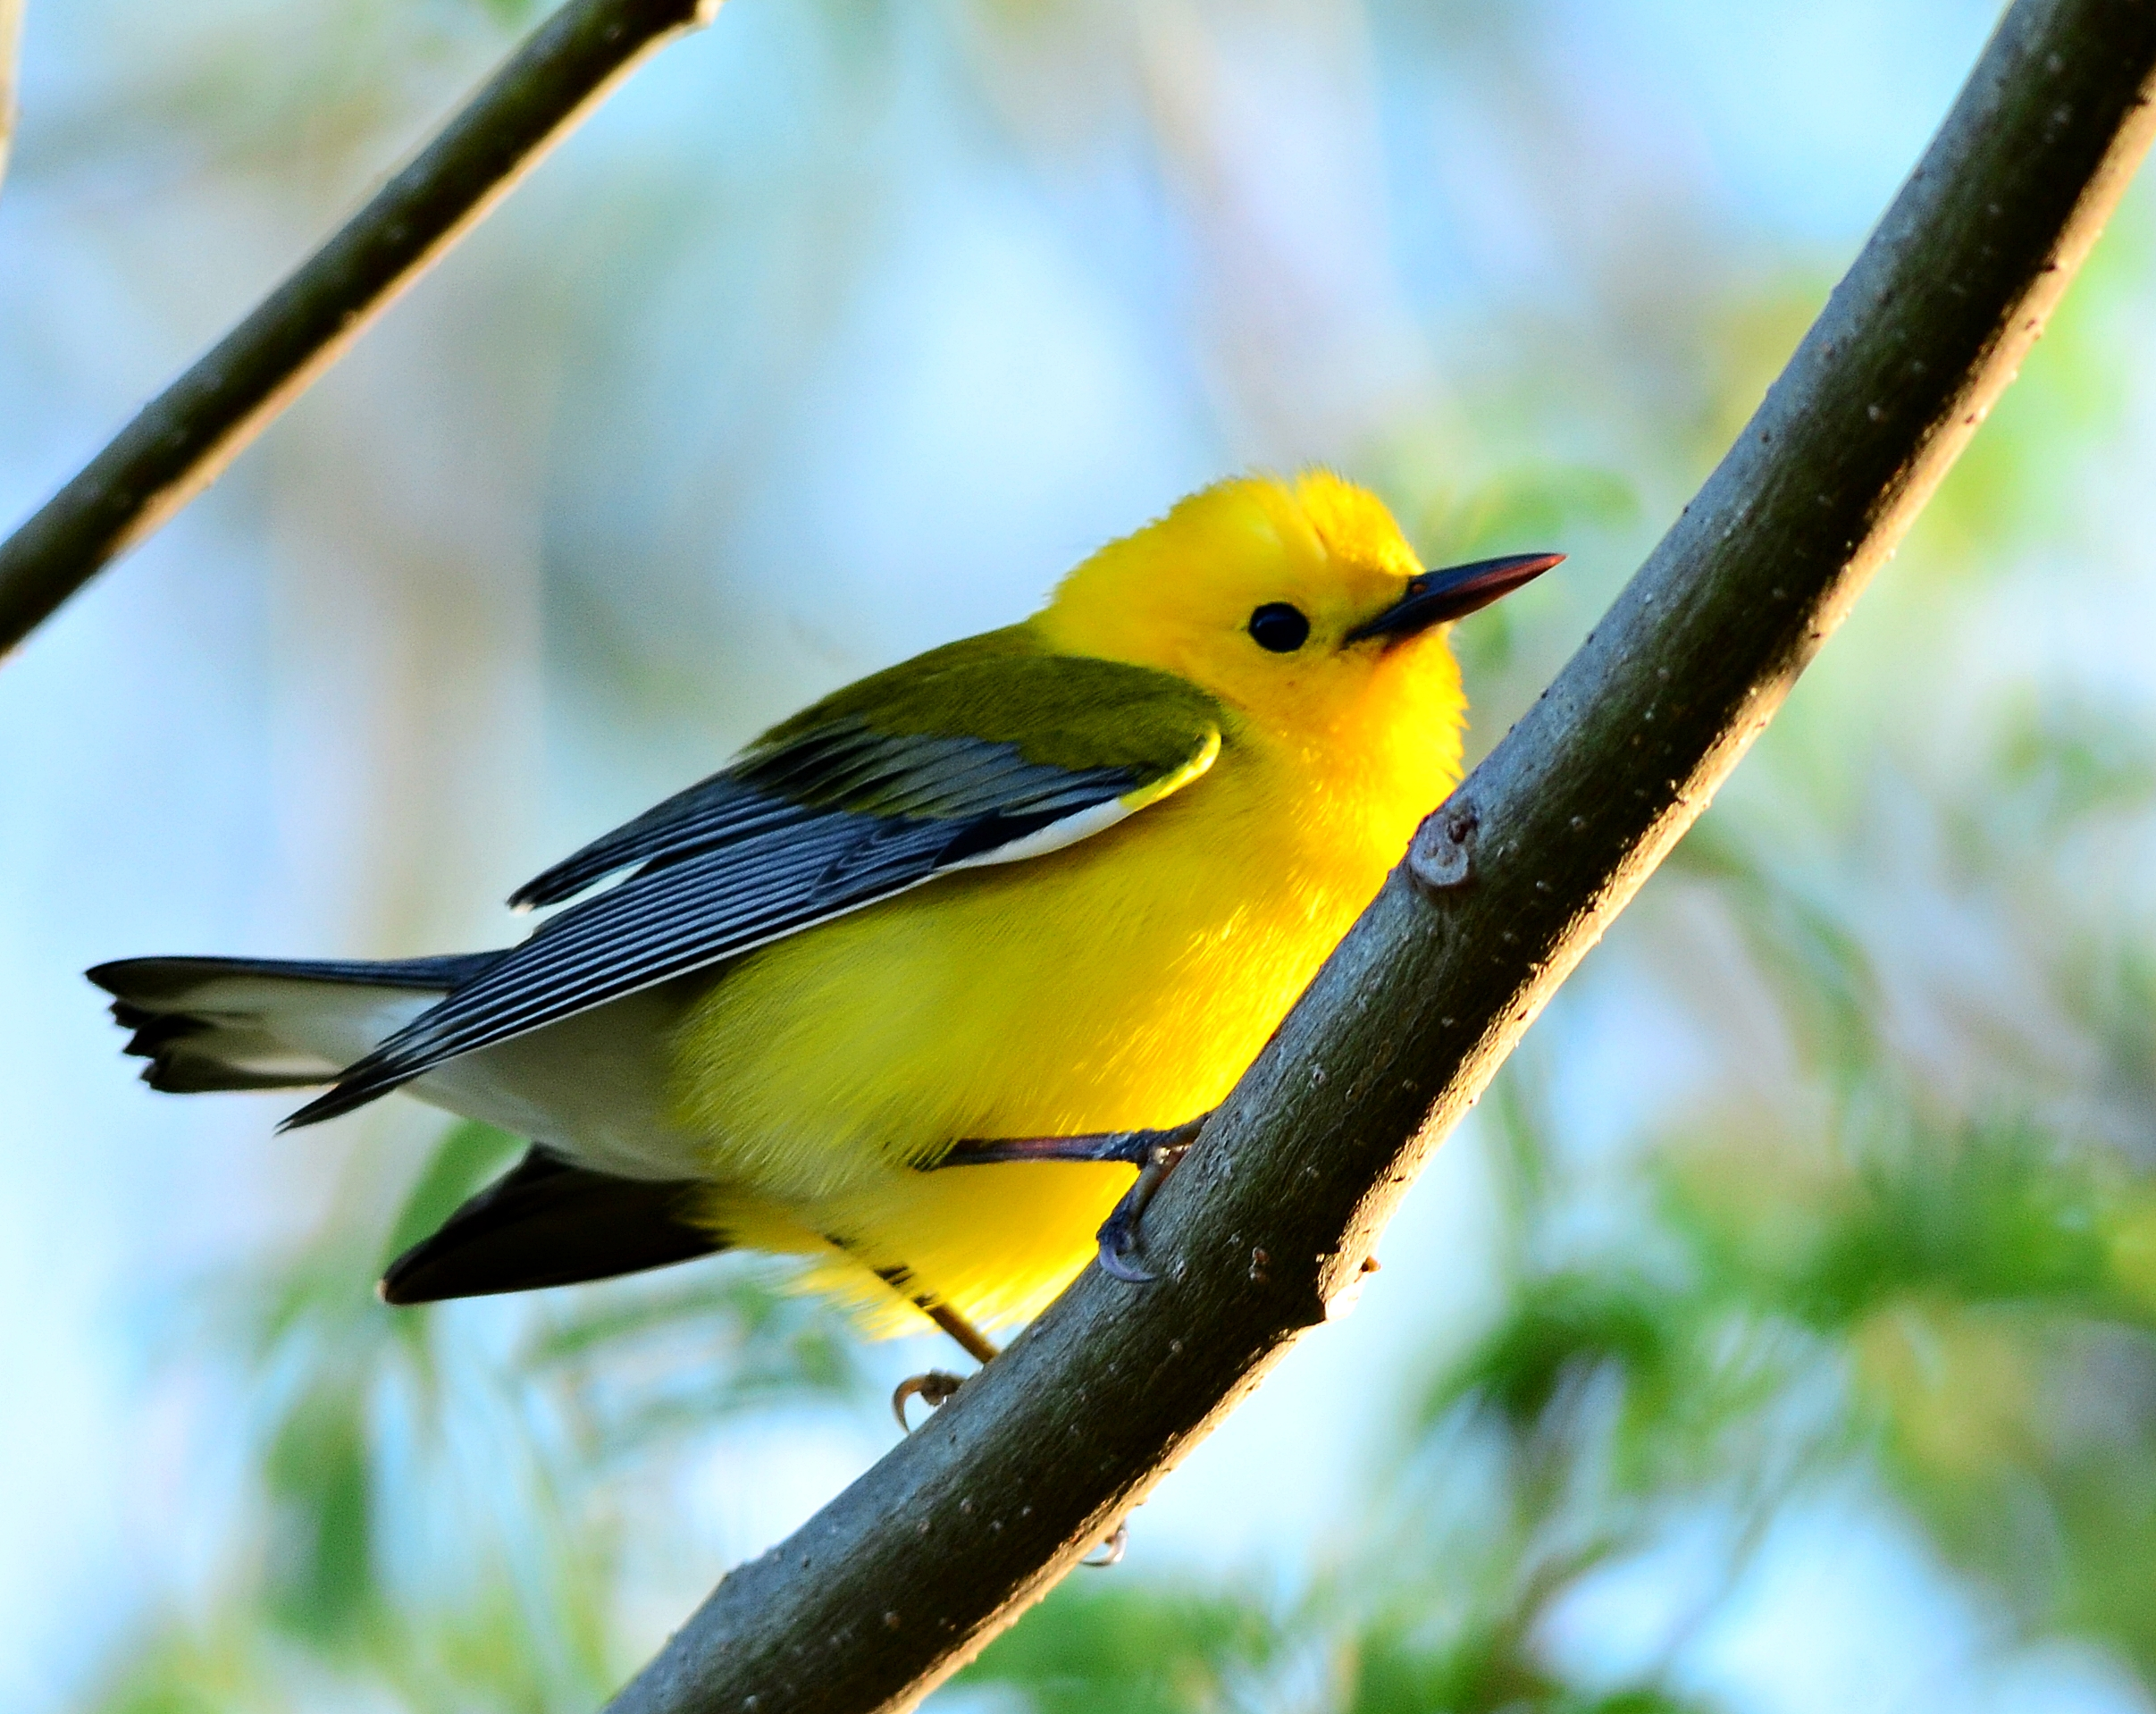 Little yellow birds invade Fort Desoto | Dina's Wildlife ...